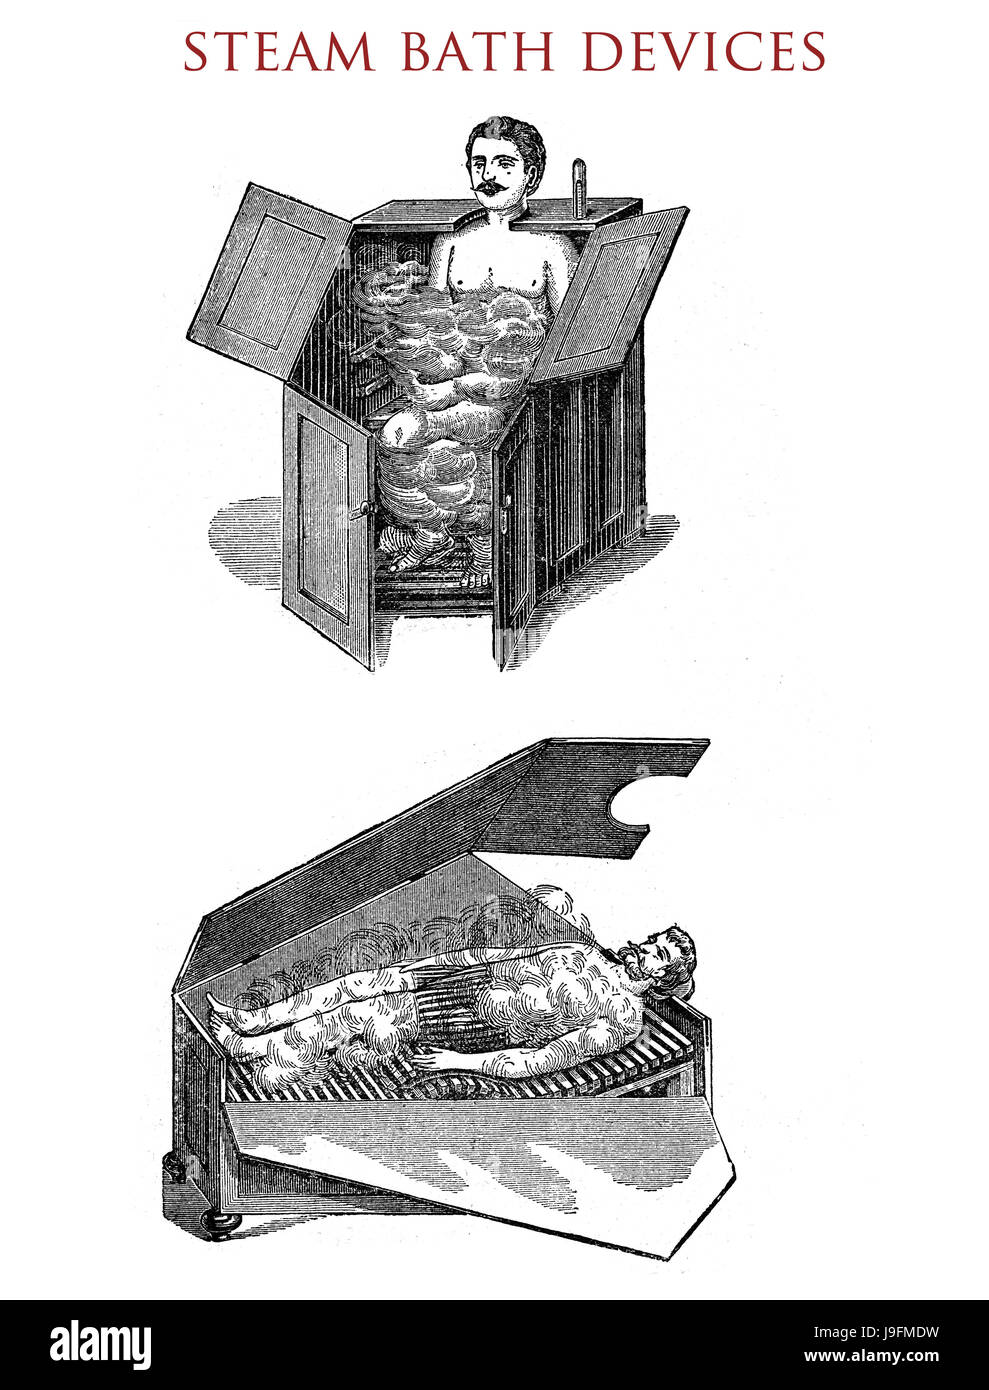 Steam bath devices - sitting and lying,vintage illustration Stock Photo